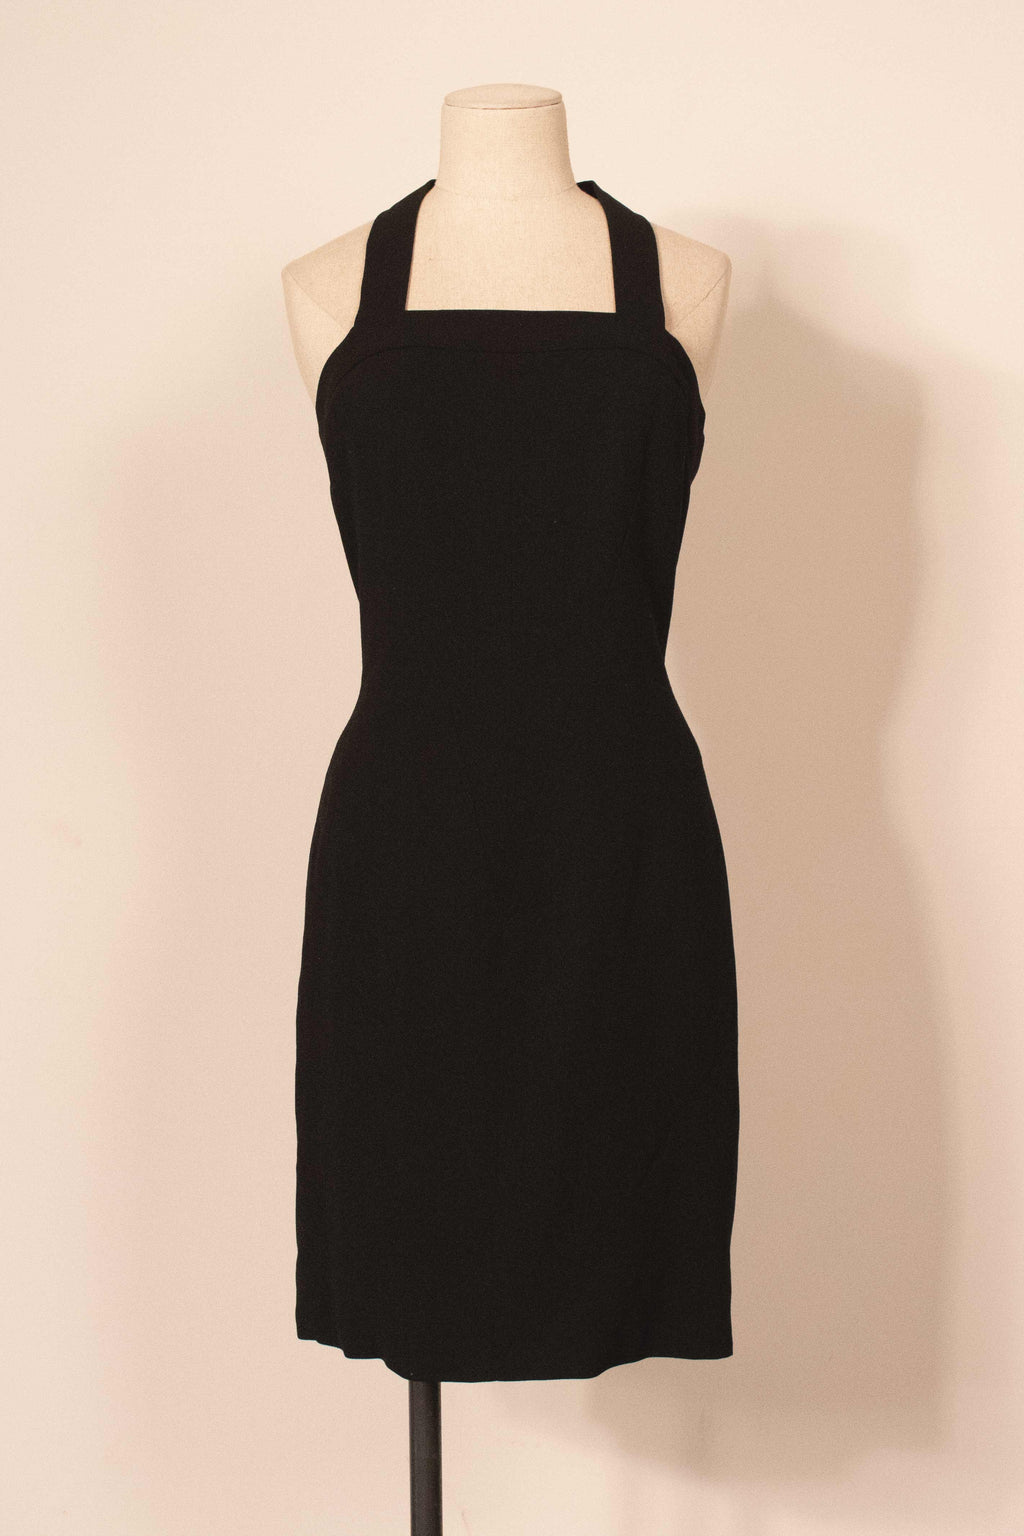 Chanel black wool seamed tank mini-dress